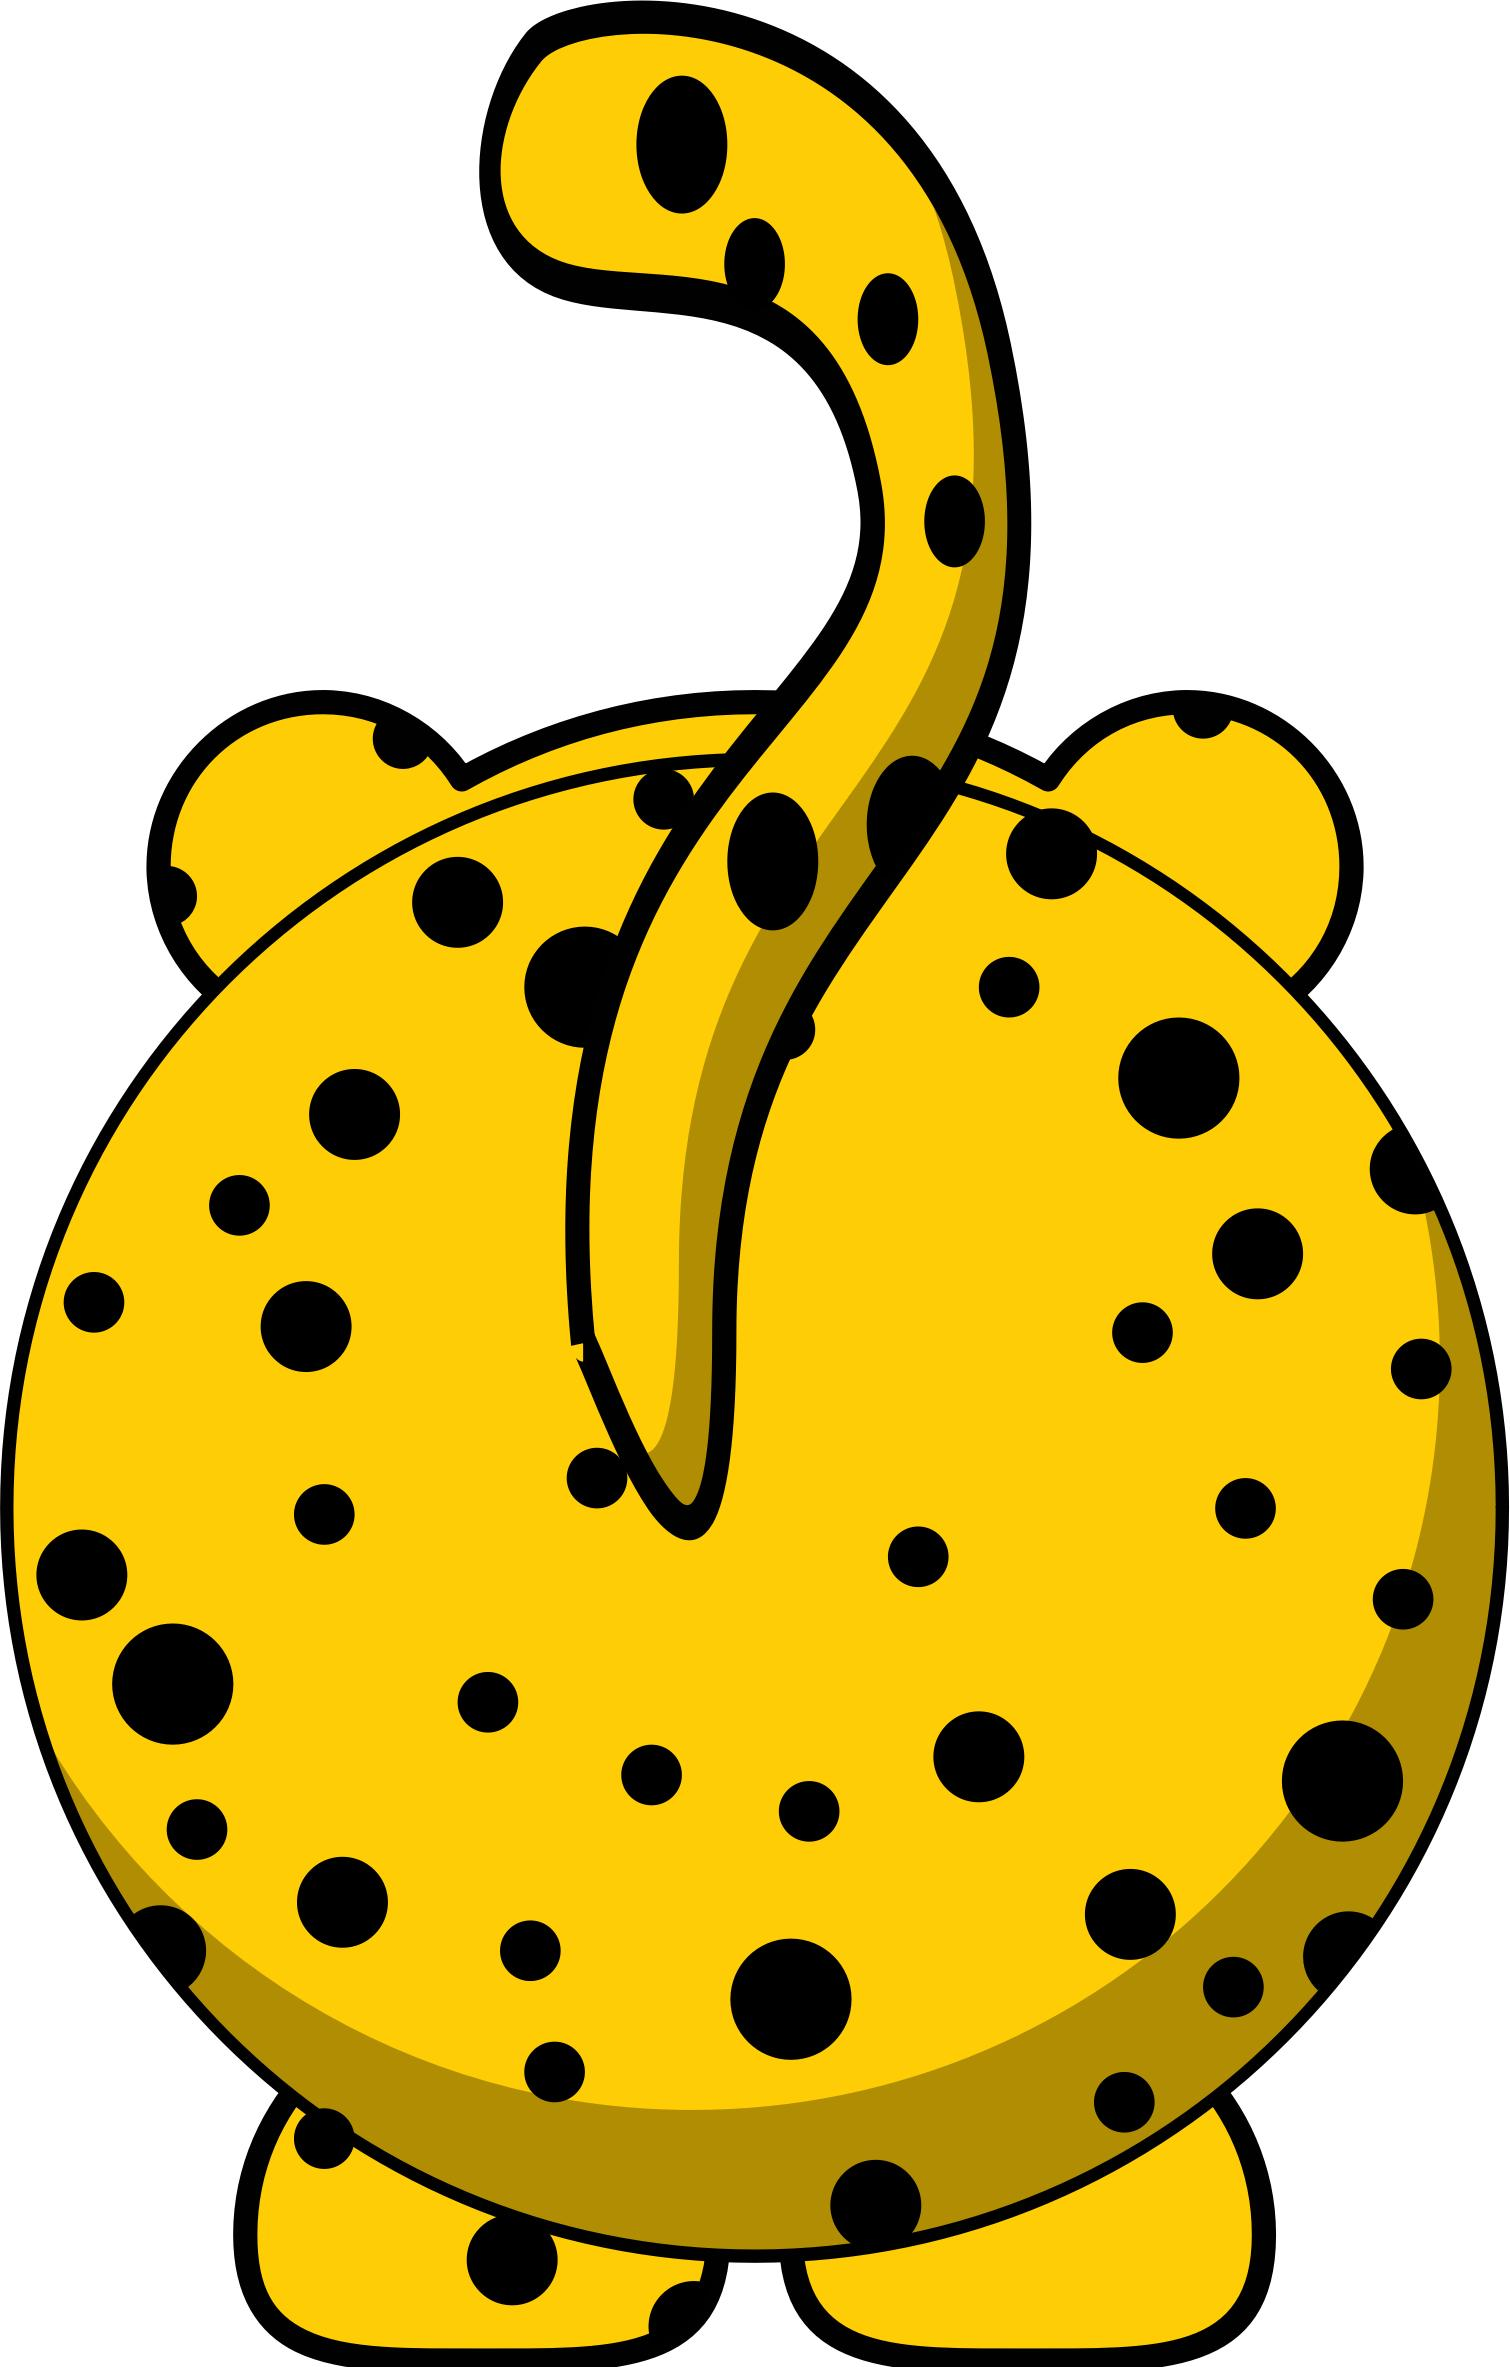 Cheetah clipart svg. Back icons png free